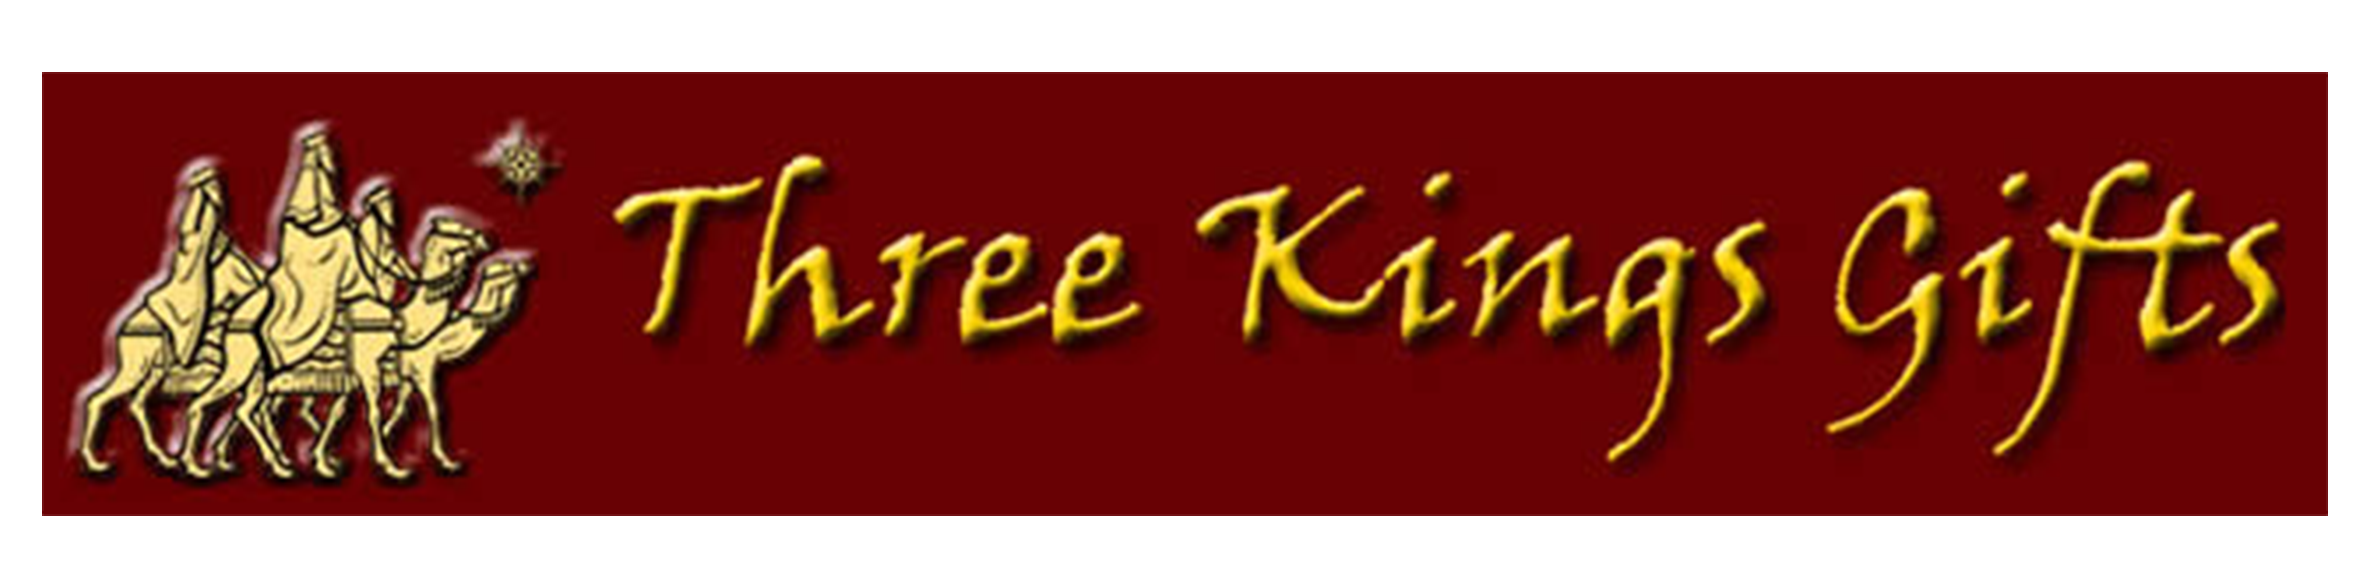 Three Kings Gifts coupon codes